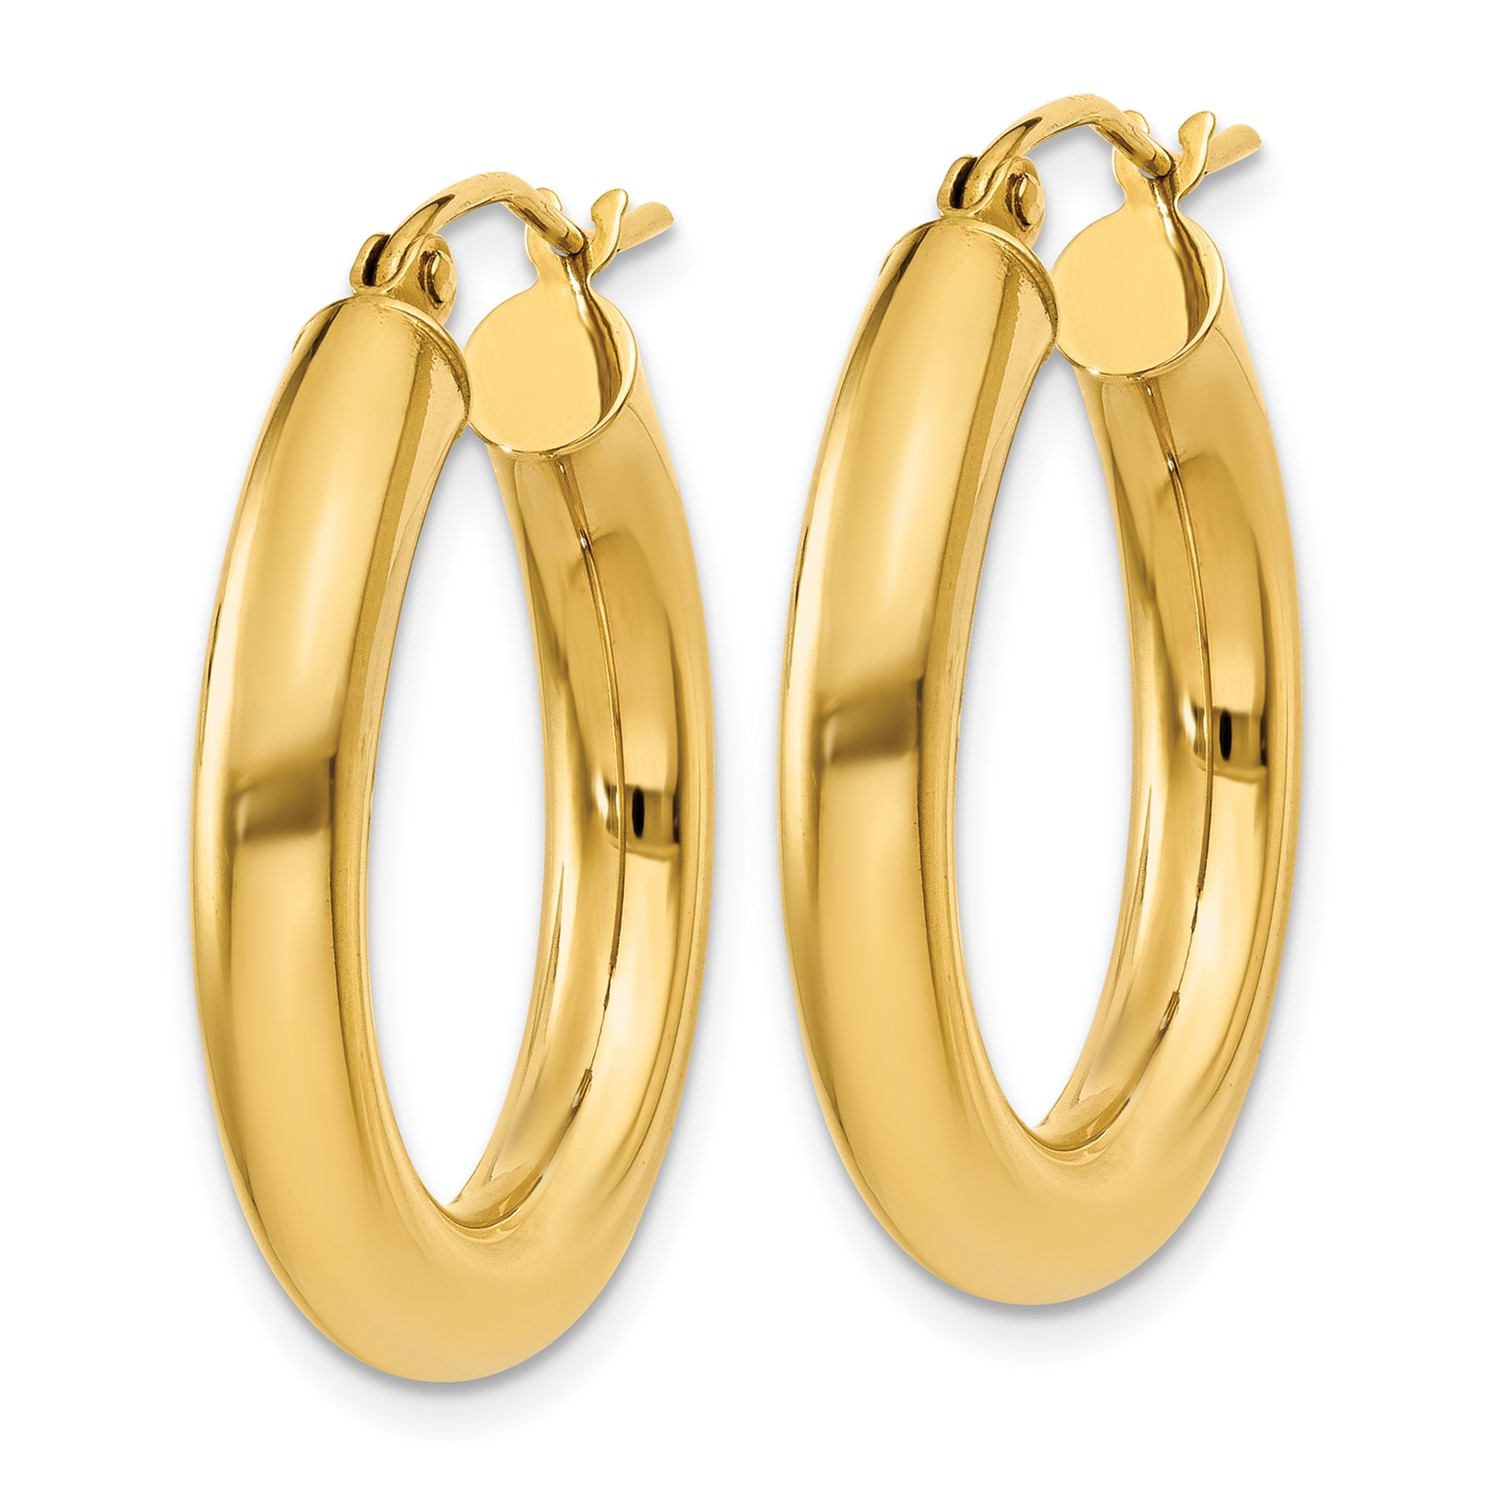 2 14k Yellow Gold Polished 4mm X 25mm Hoop Earrings